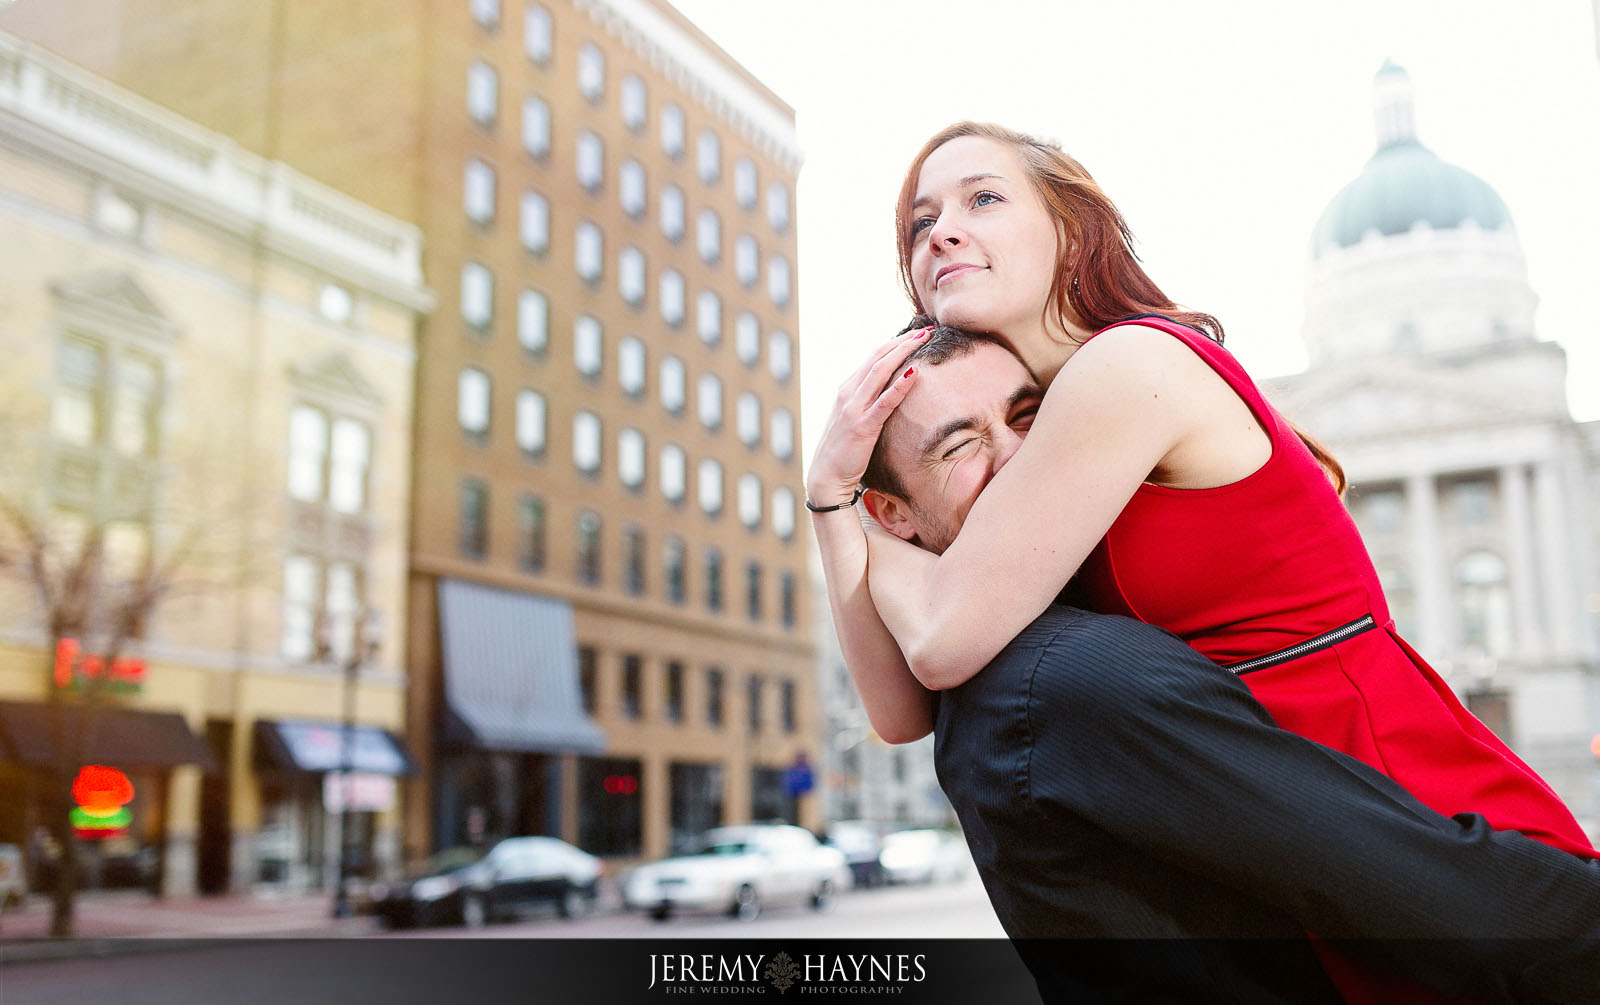 06-indiana-state-capitol-building-downtown-indianapolis-city-engagement-photography-200-west-washington-street.jpg